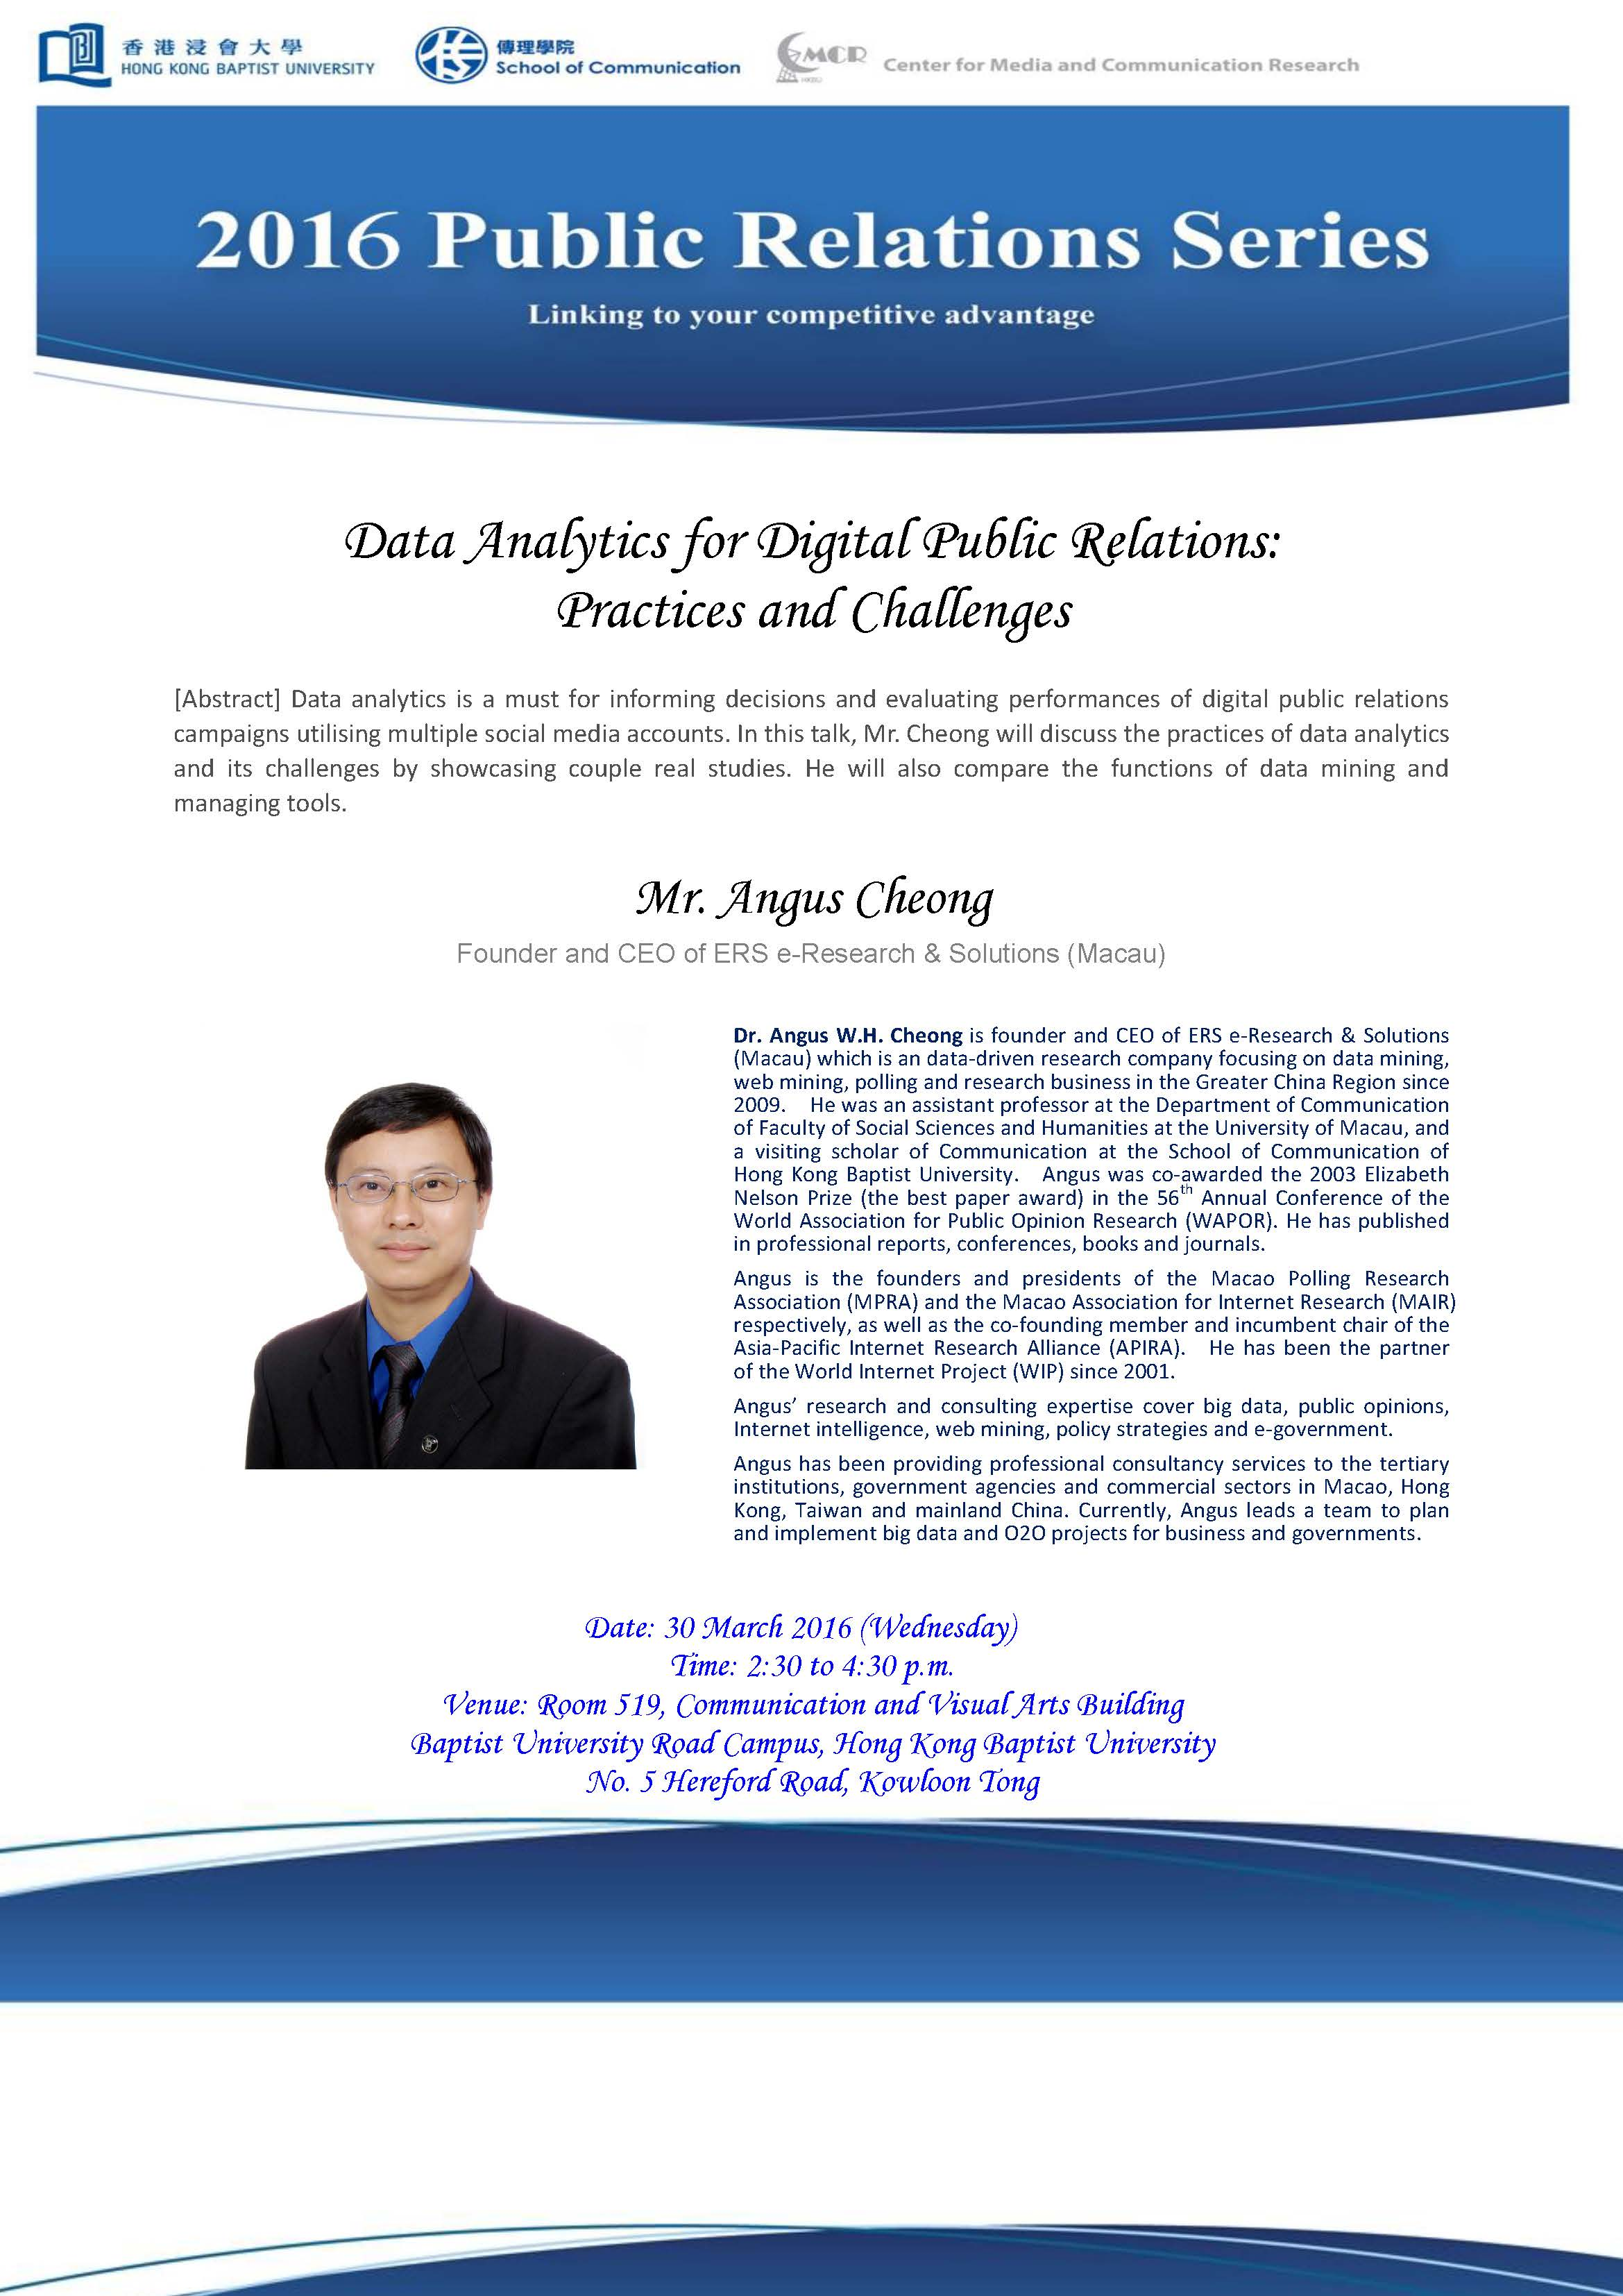 Data Analytics of Digital Public Relations: Practices and Challenges